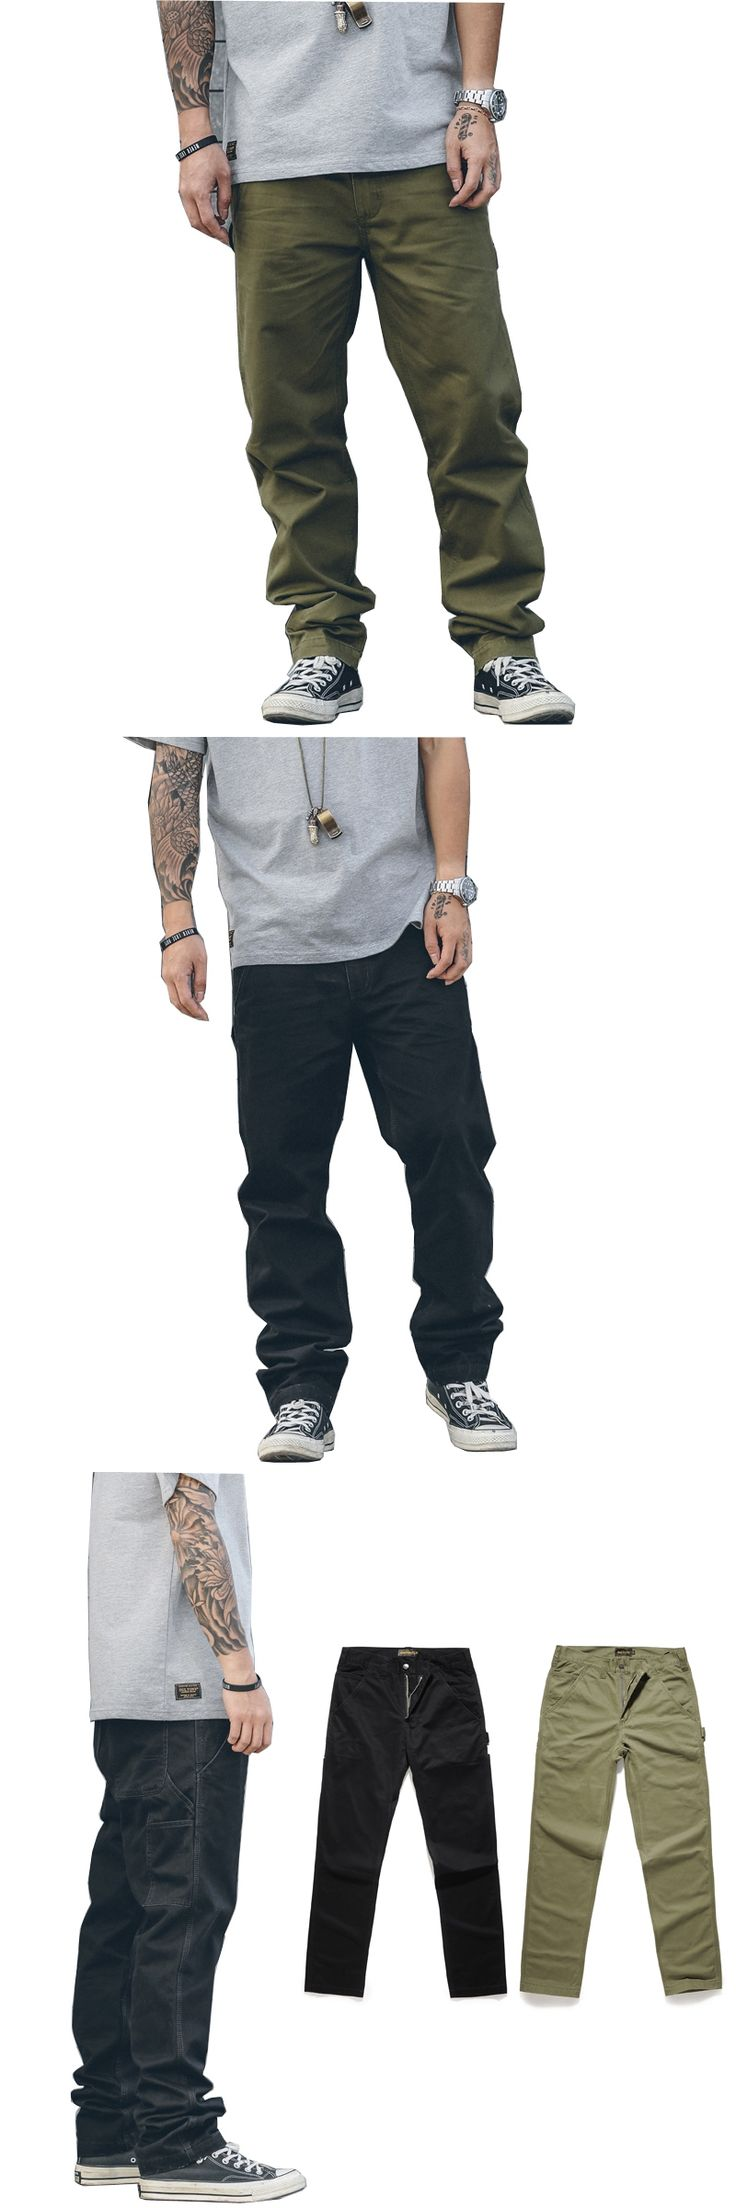 2017 new loose Long Cargo Pants Baggy Trousers Fashion Fitted Bottoms street wear hip hop Pocket Design Army green black  pants